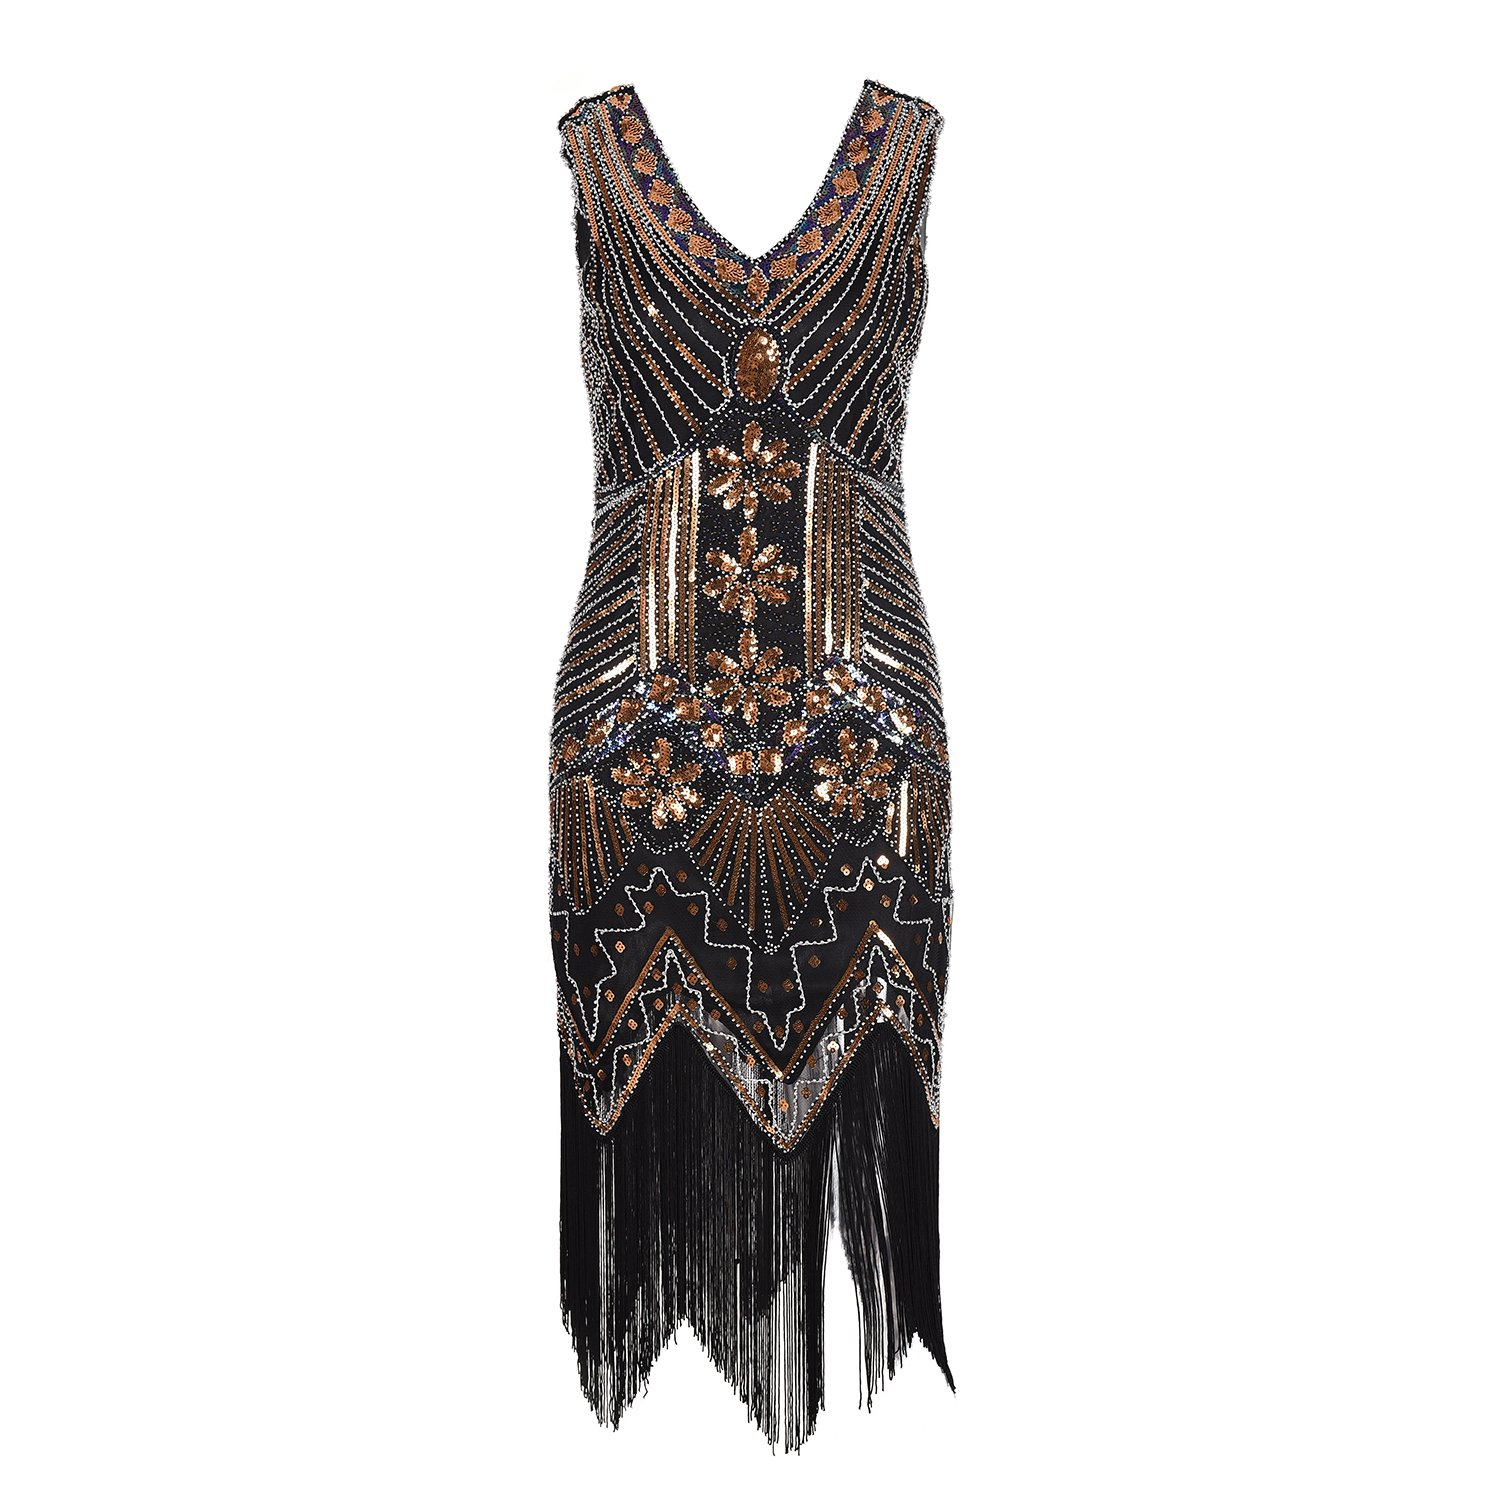 Sequin Dress Gatsby Dresses - Flapper Dress Evening Dress for Women   Amazon.ca  Clothing   Accessories 17359832b4be